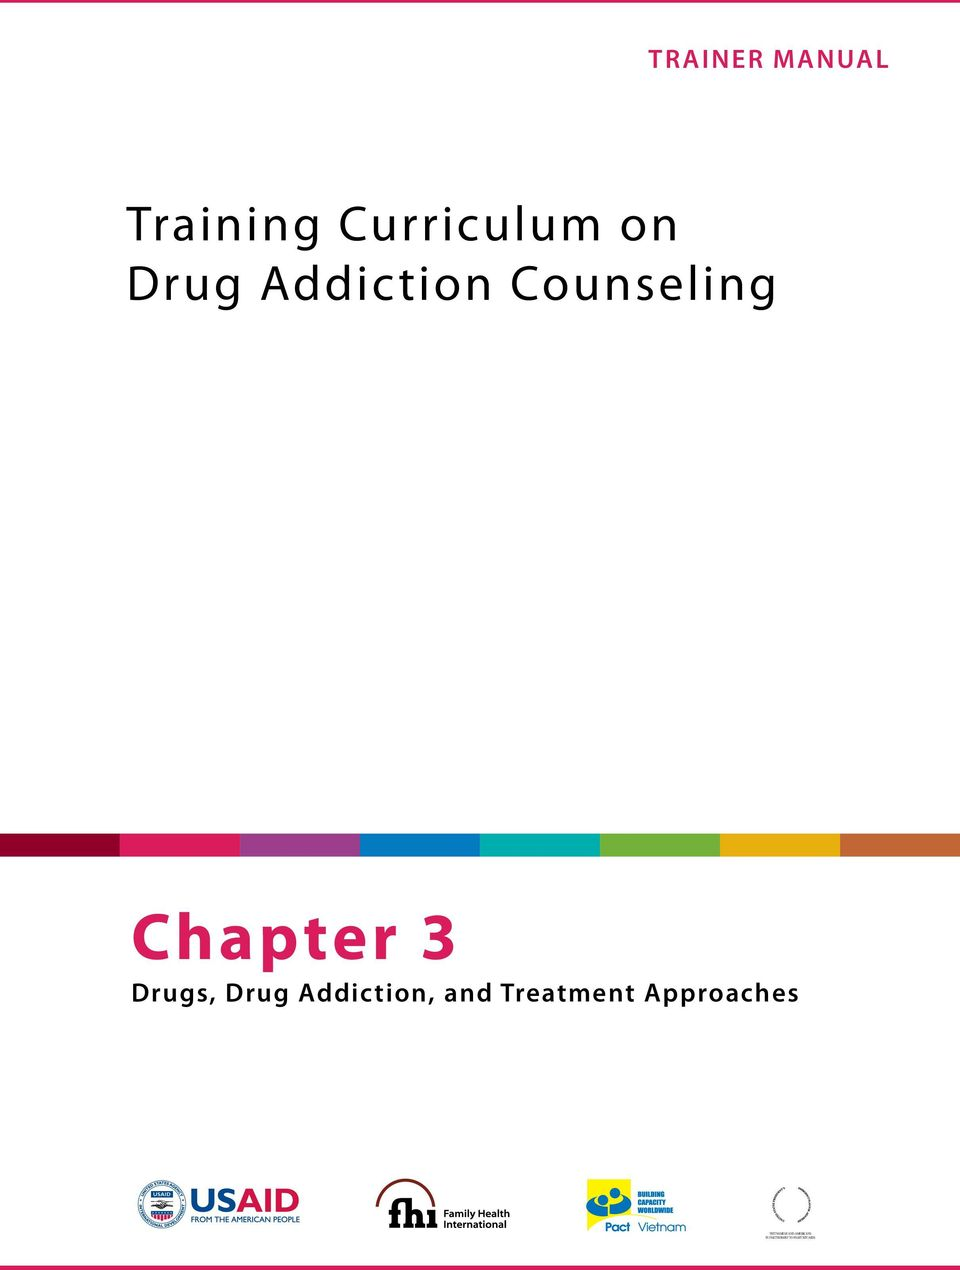 Addiction, and Treatment Approaches